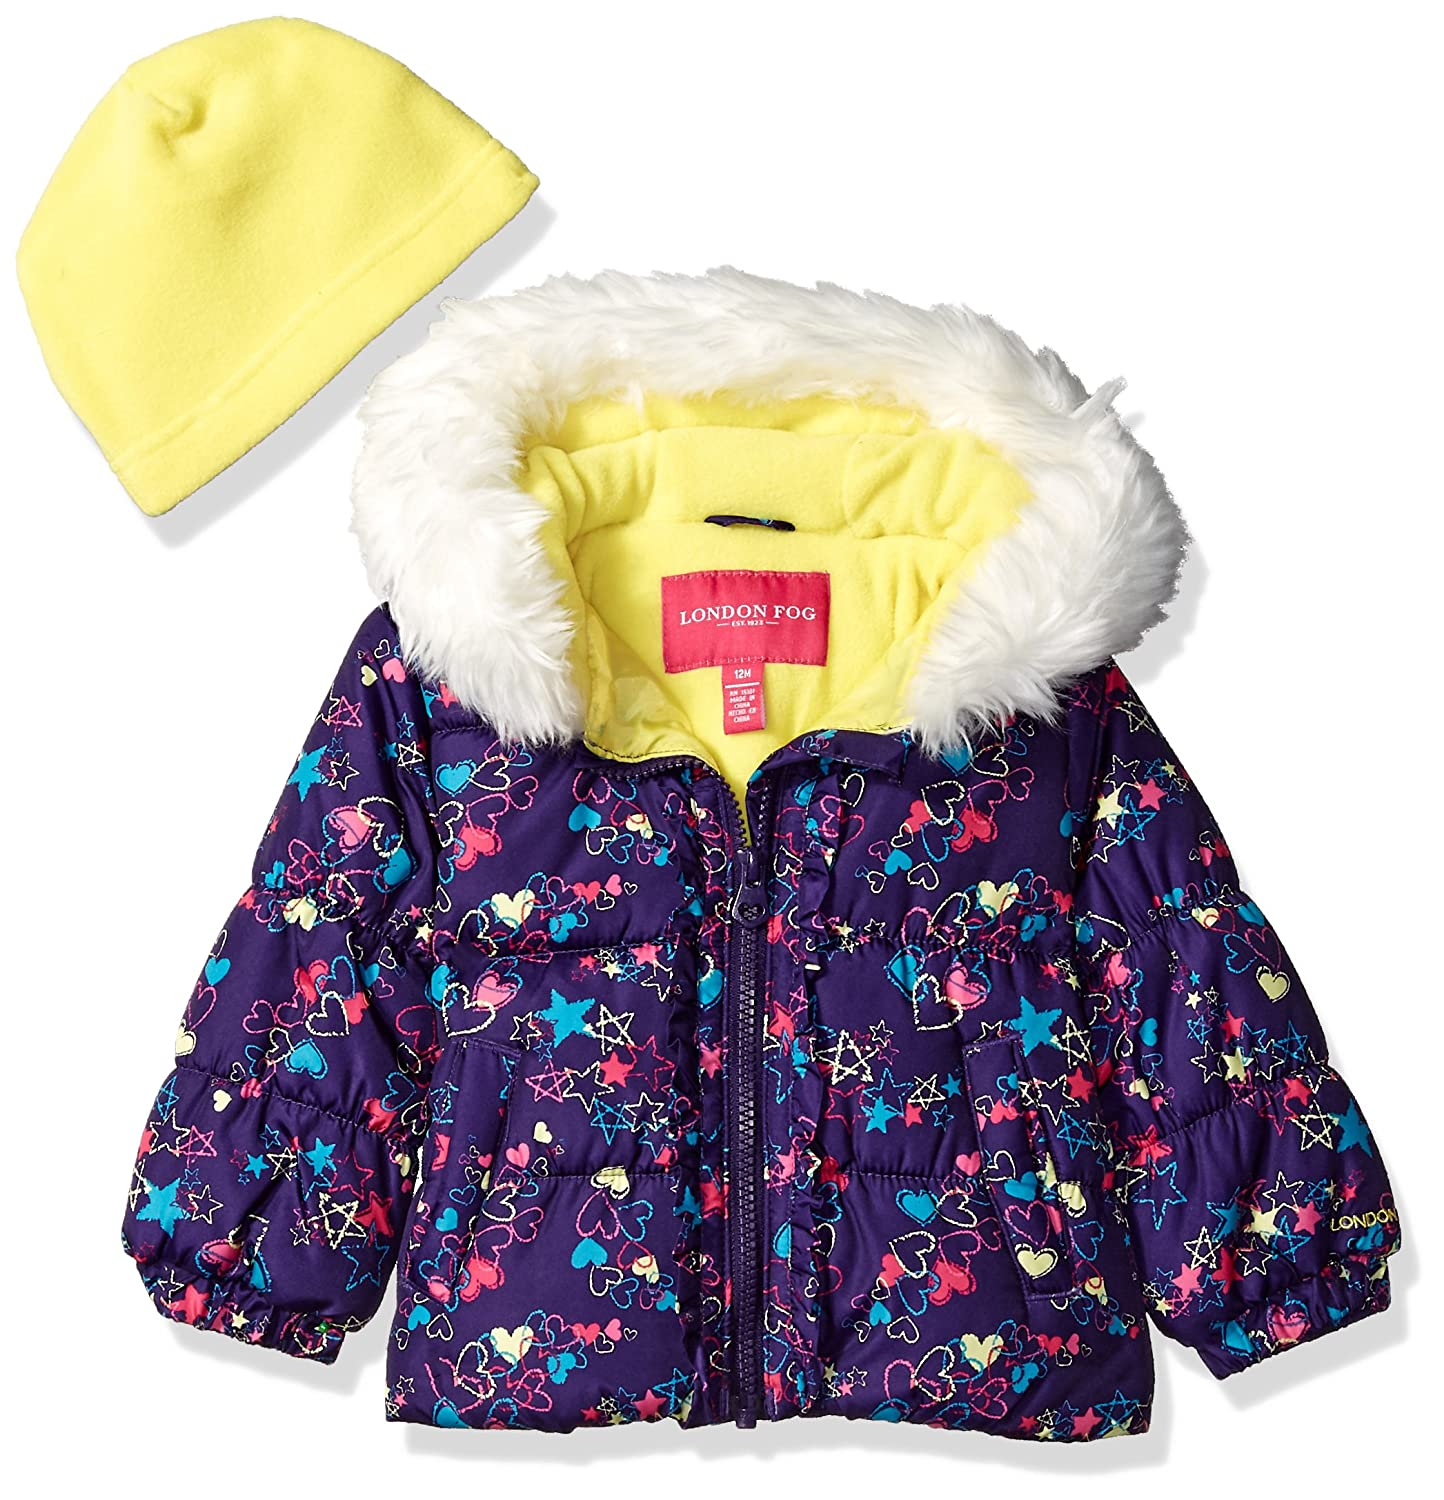 London Fog Baby Girls Winter Coat with Hat /& Scarf